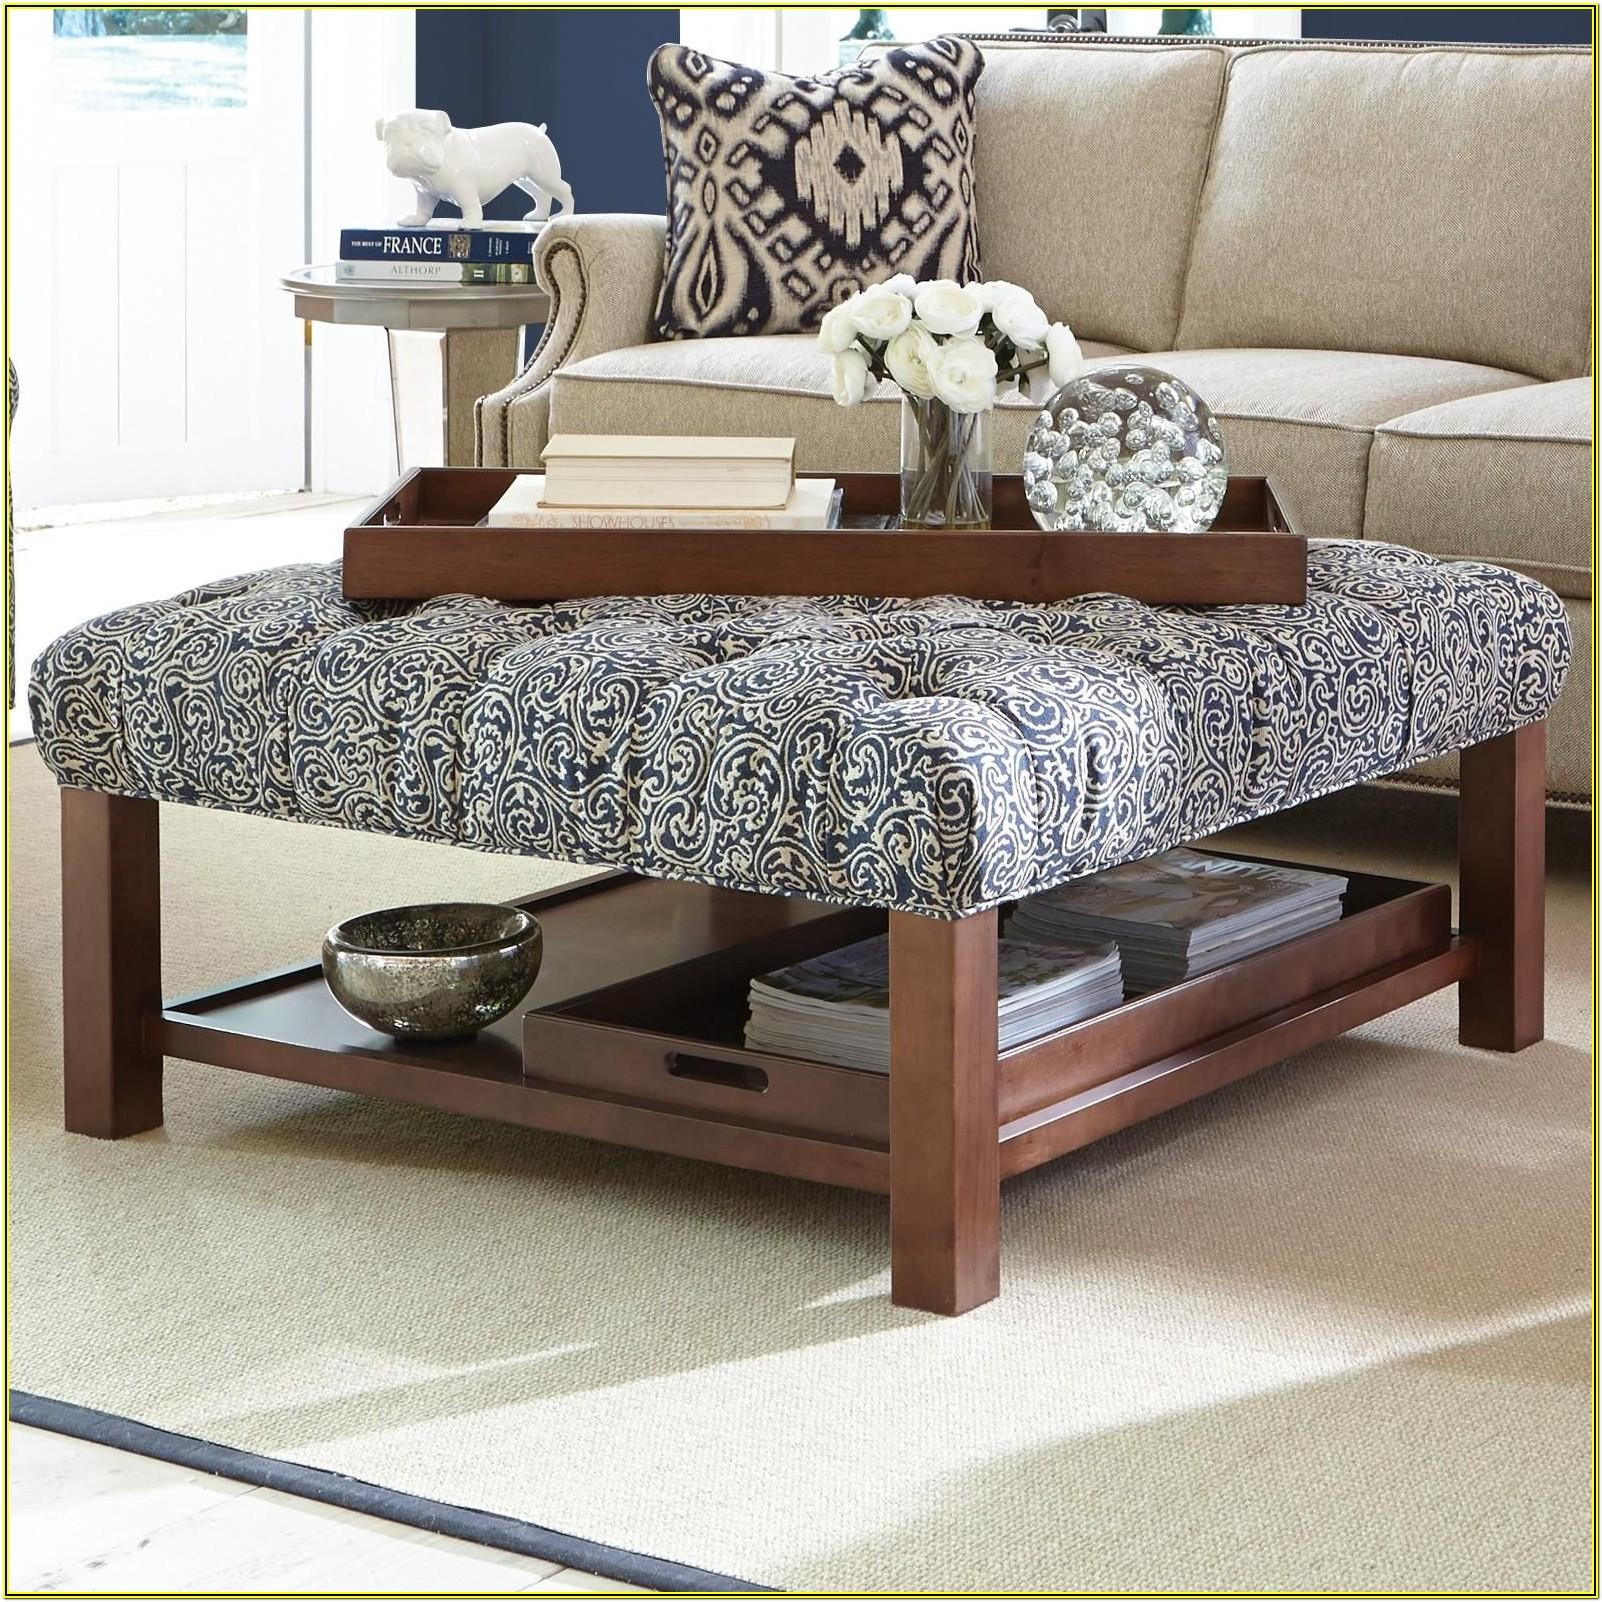 Living Room Ideas With Fur Ottoman